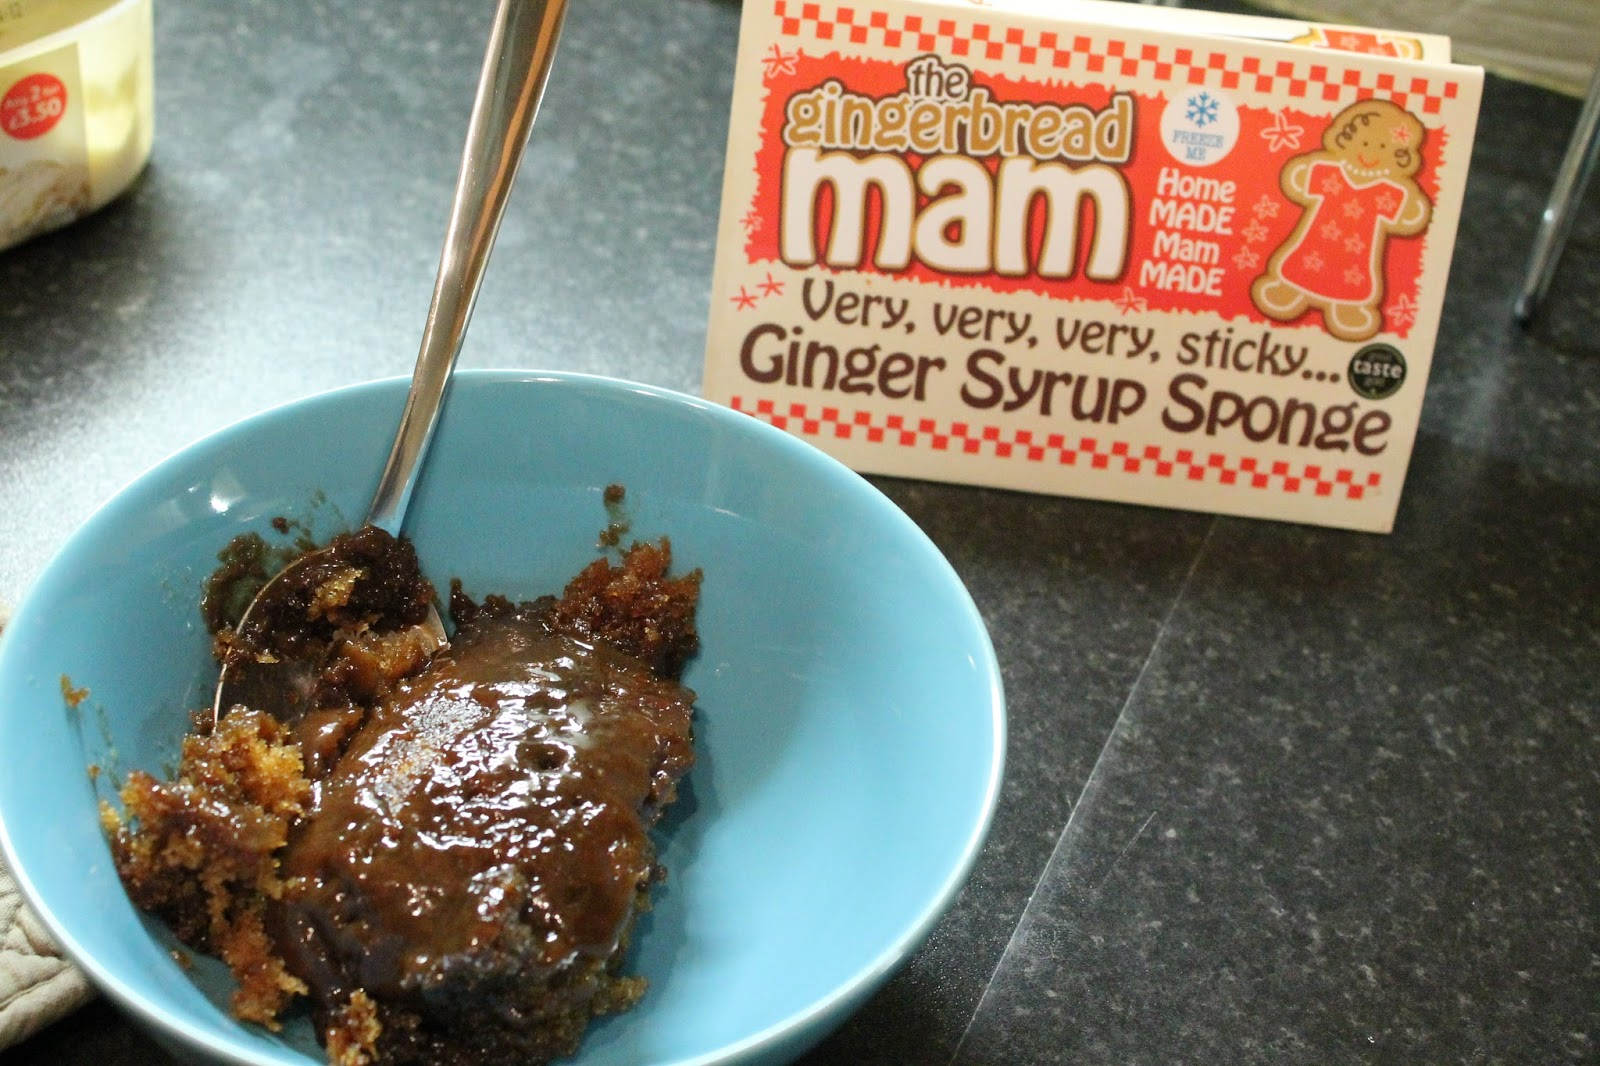 The Gingerbread Mam - North East Local Food Businesses